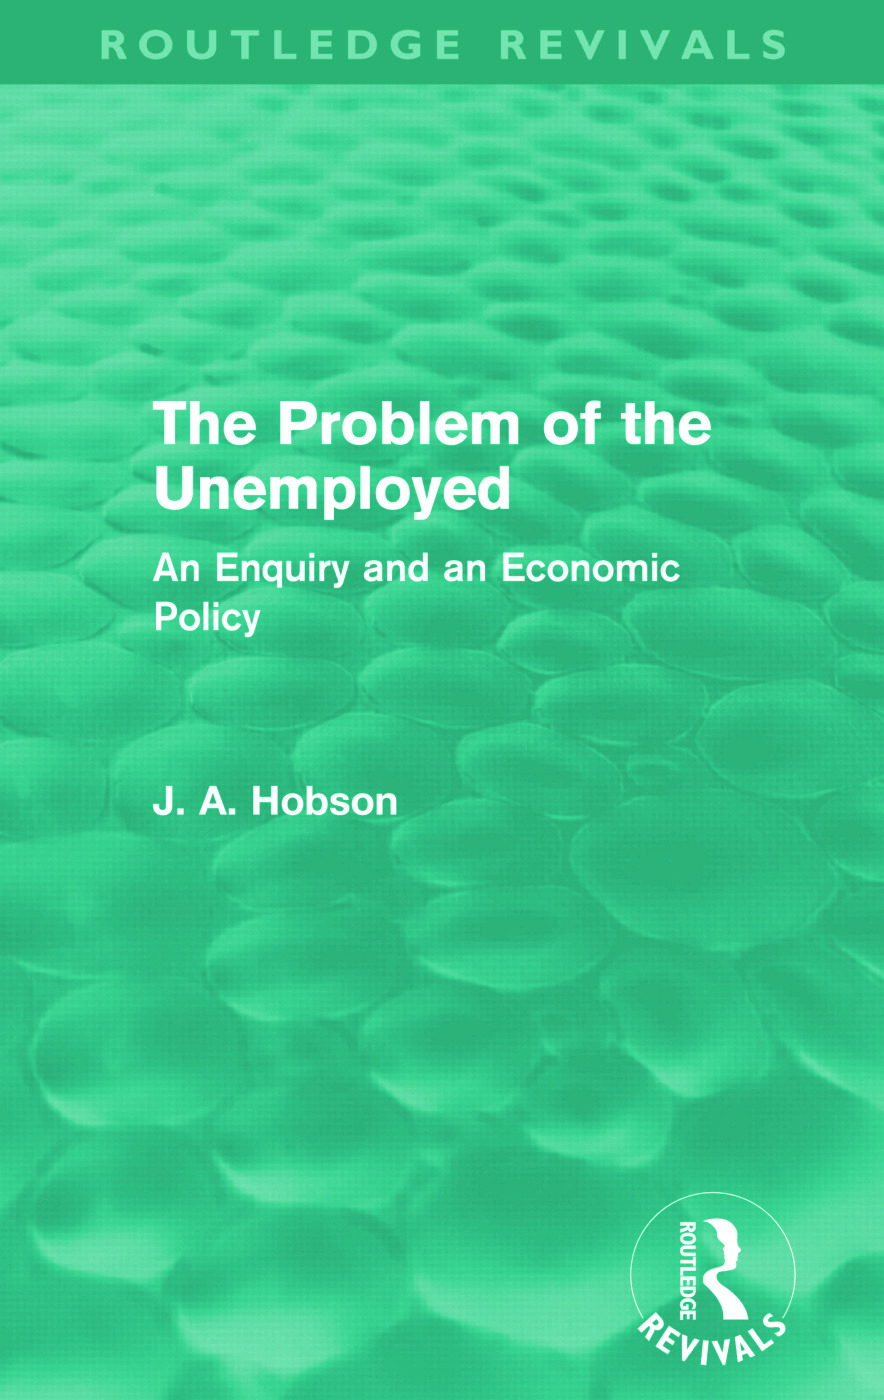 The Problem of the Unemployed (Routledge Revivals): An Enquiry and an Economic Policy, 1st Edition (Paperback) book cover